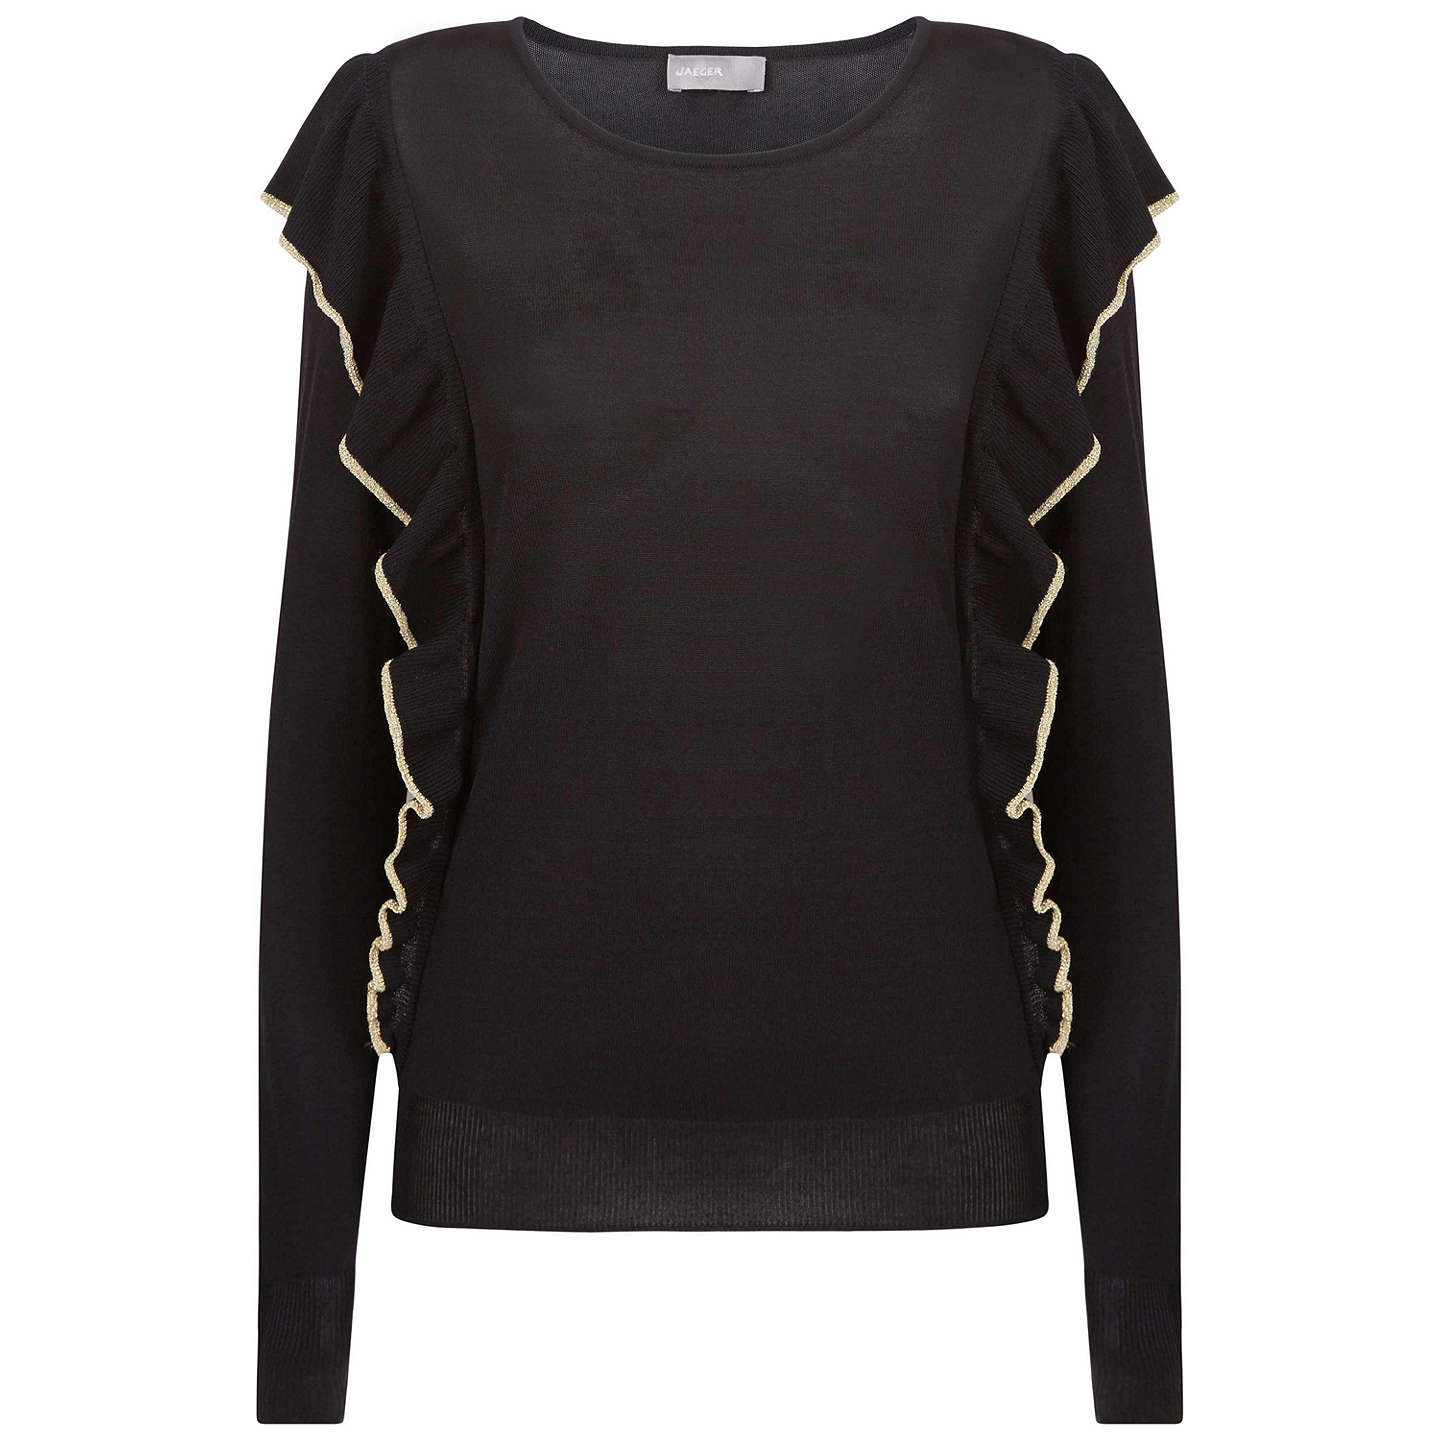 BuyJaeger Metallic Tipped Frill Jumper, Black, S Online at johnlewis.com